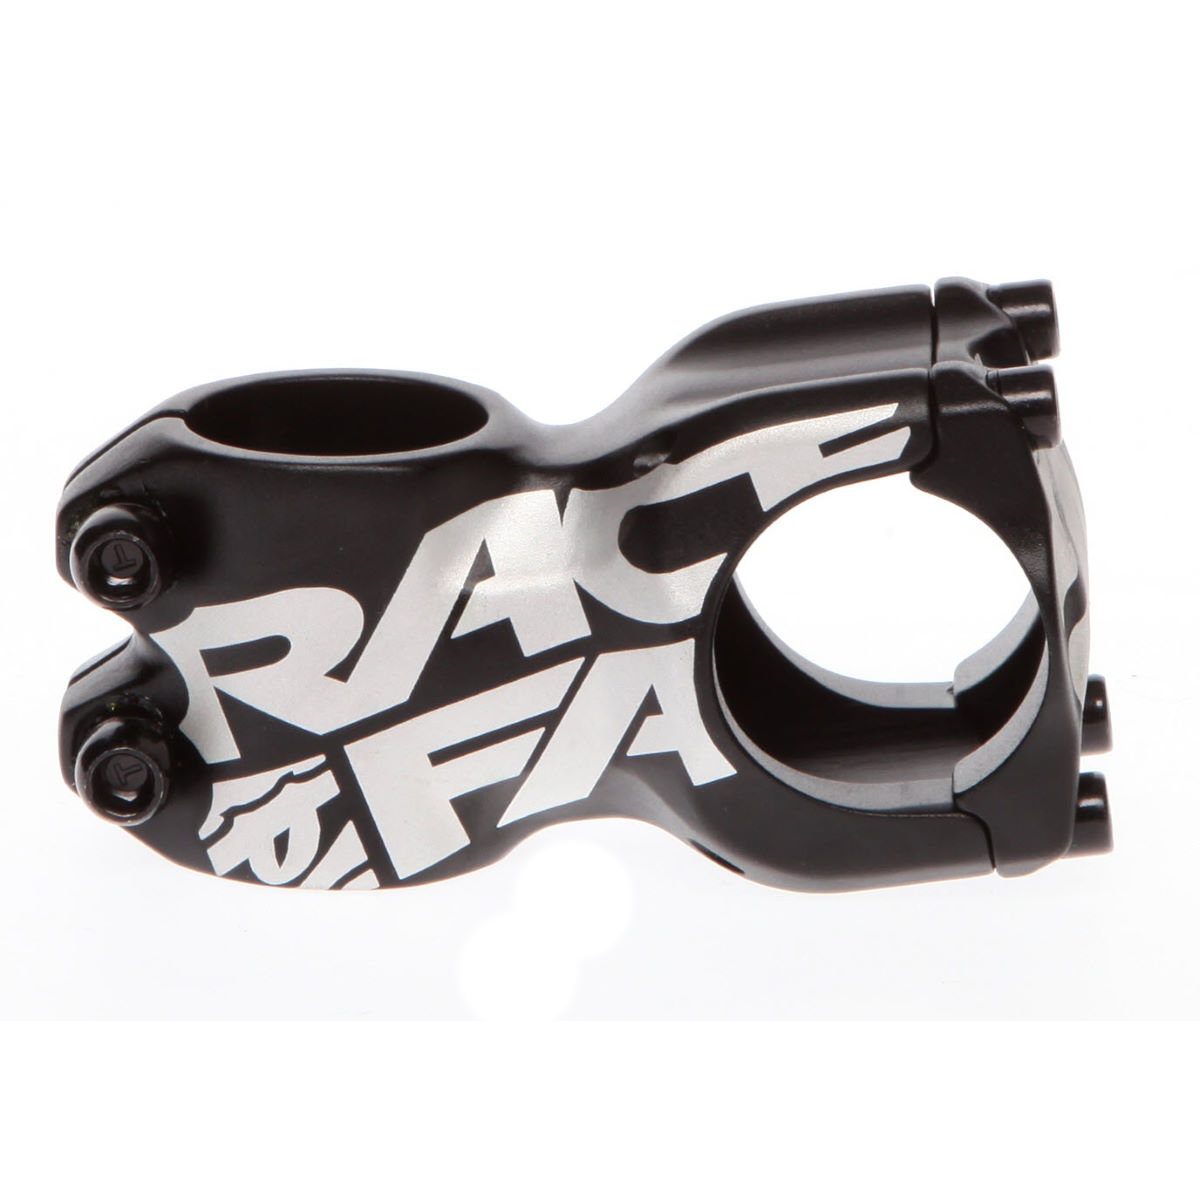 Potence VTT Race Face Chester - 070mm x 31.8mm Noir Potences